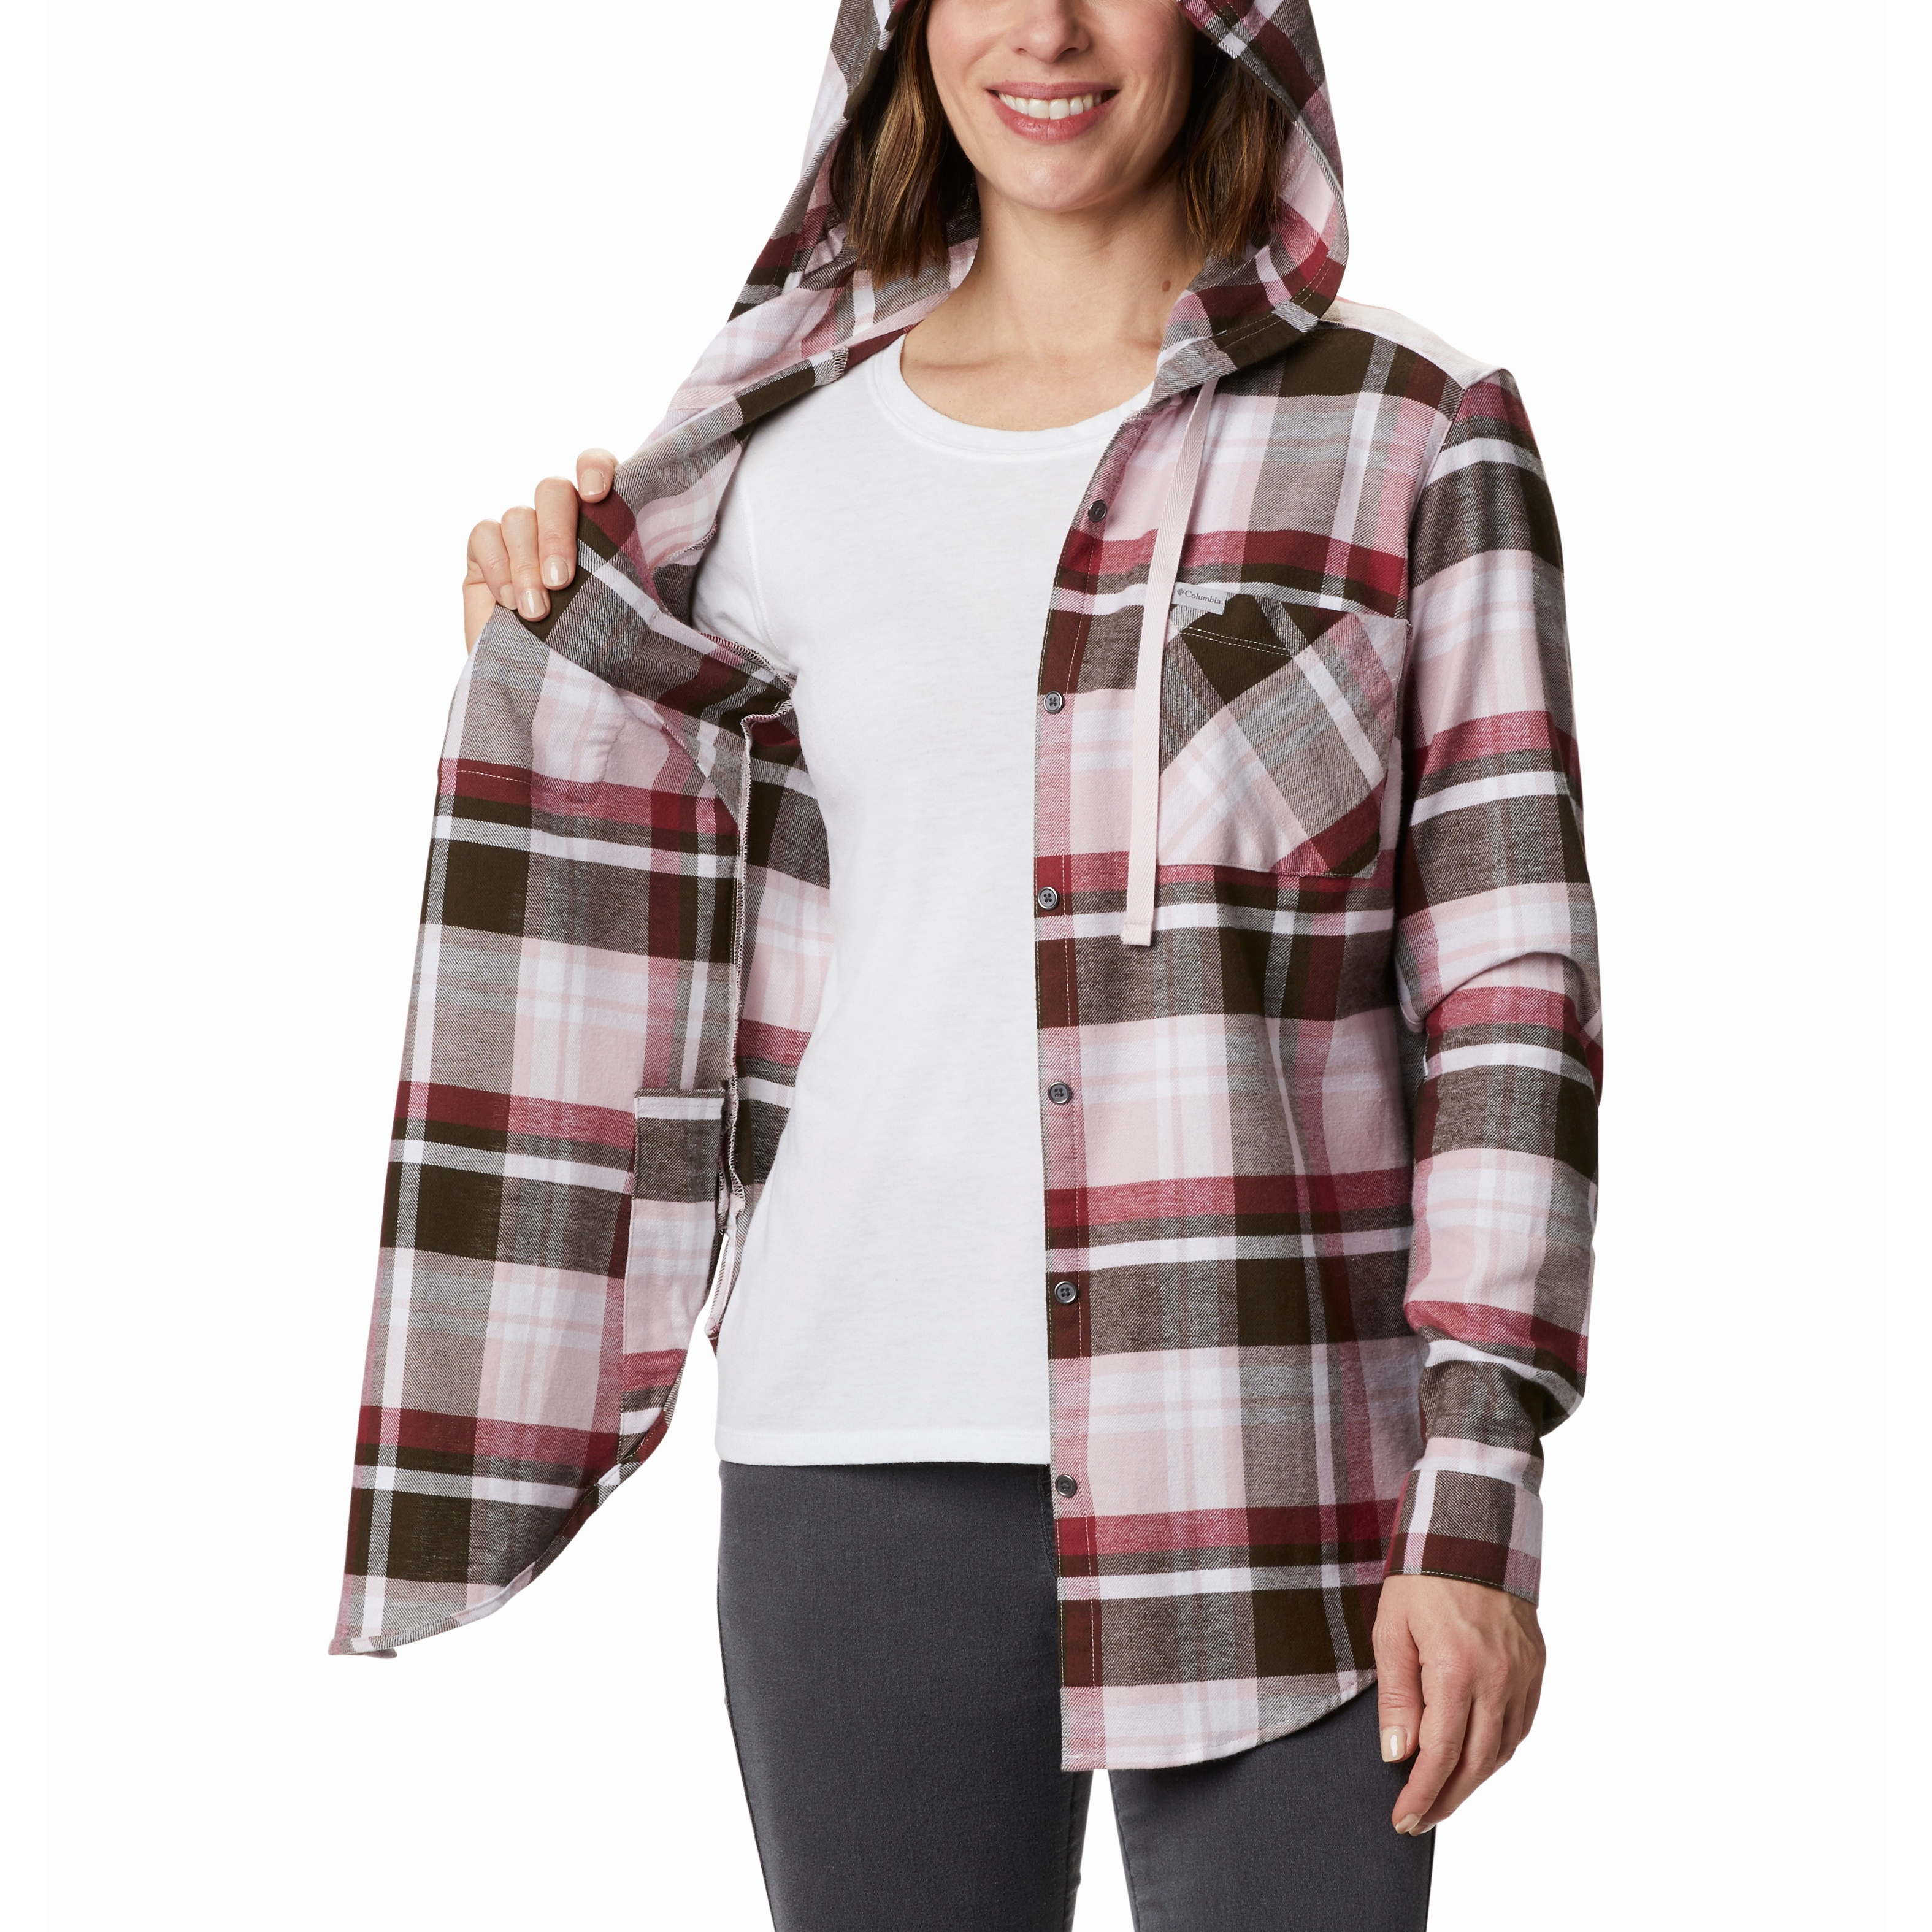 Anytime Stretch Hooded Shirt - Women's